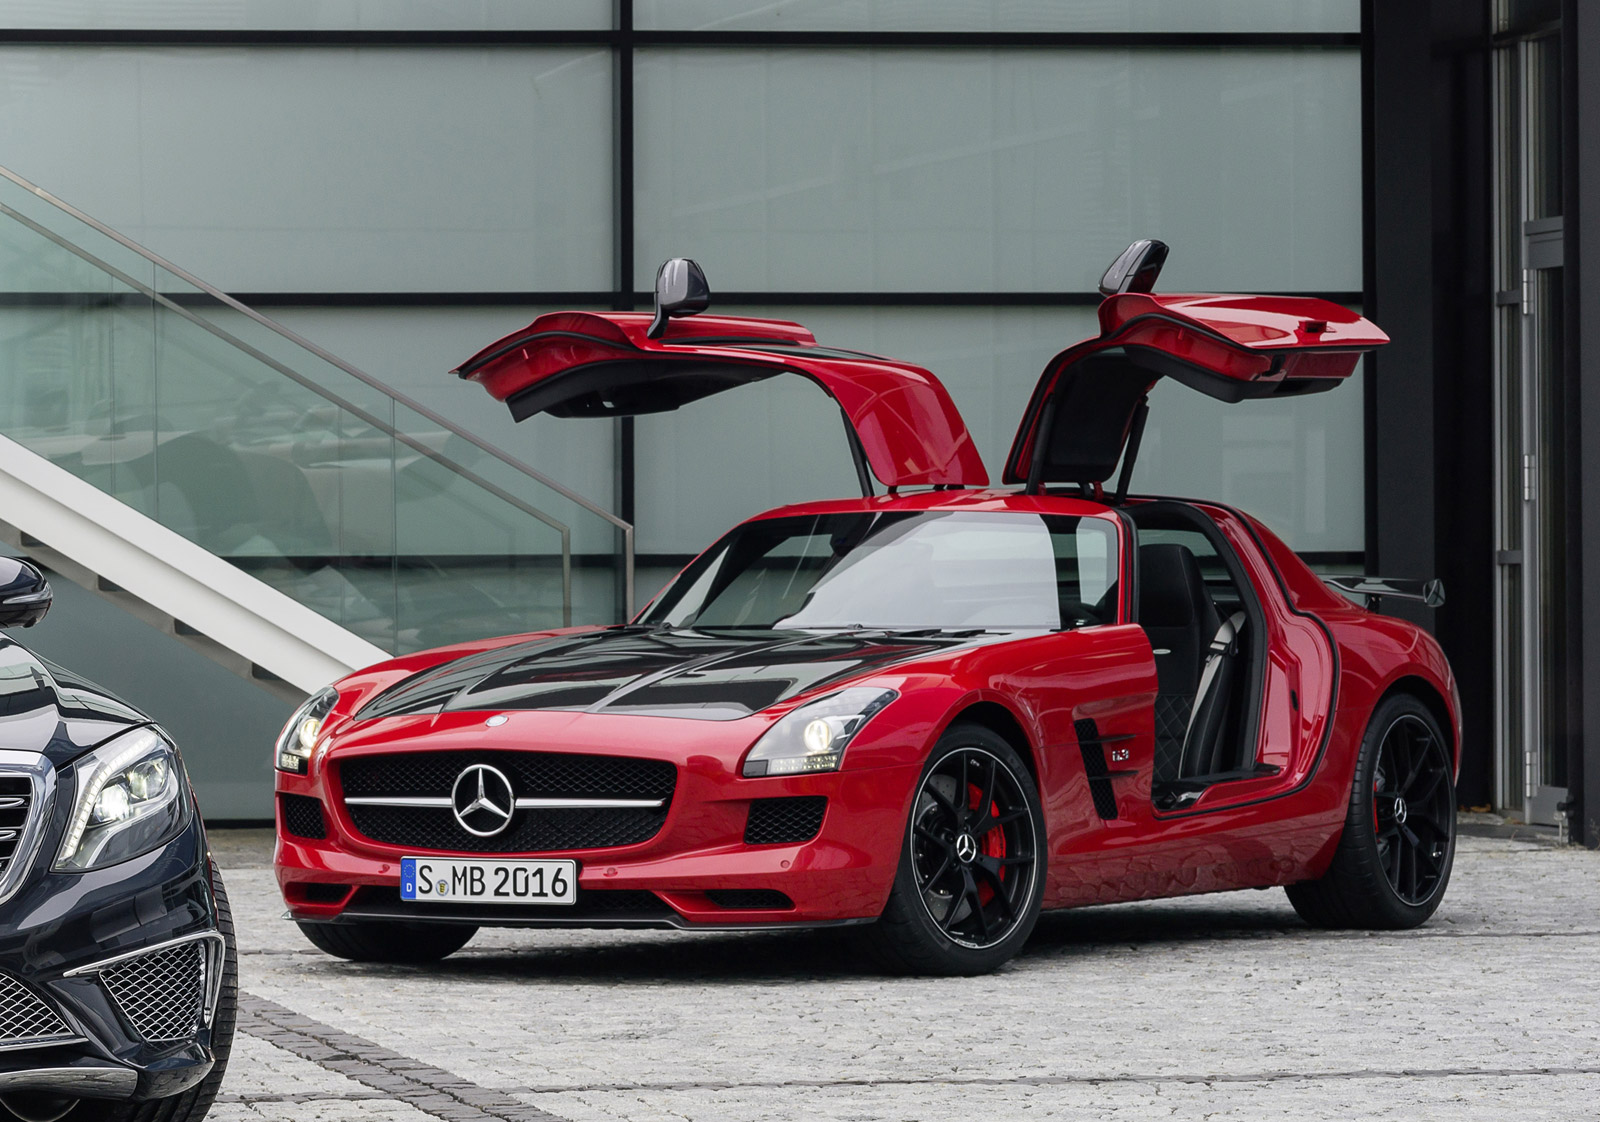 sls amg gt final edition diesel vs electric gov shutdown what s new the car connection. Black Bedroom Furniture Sets. Home Design Ideas